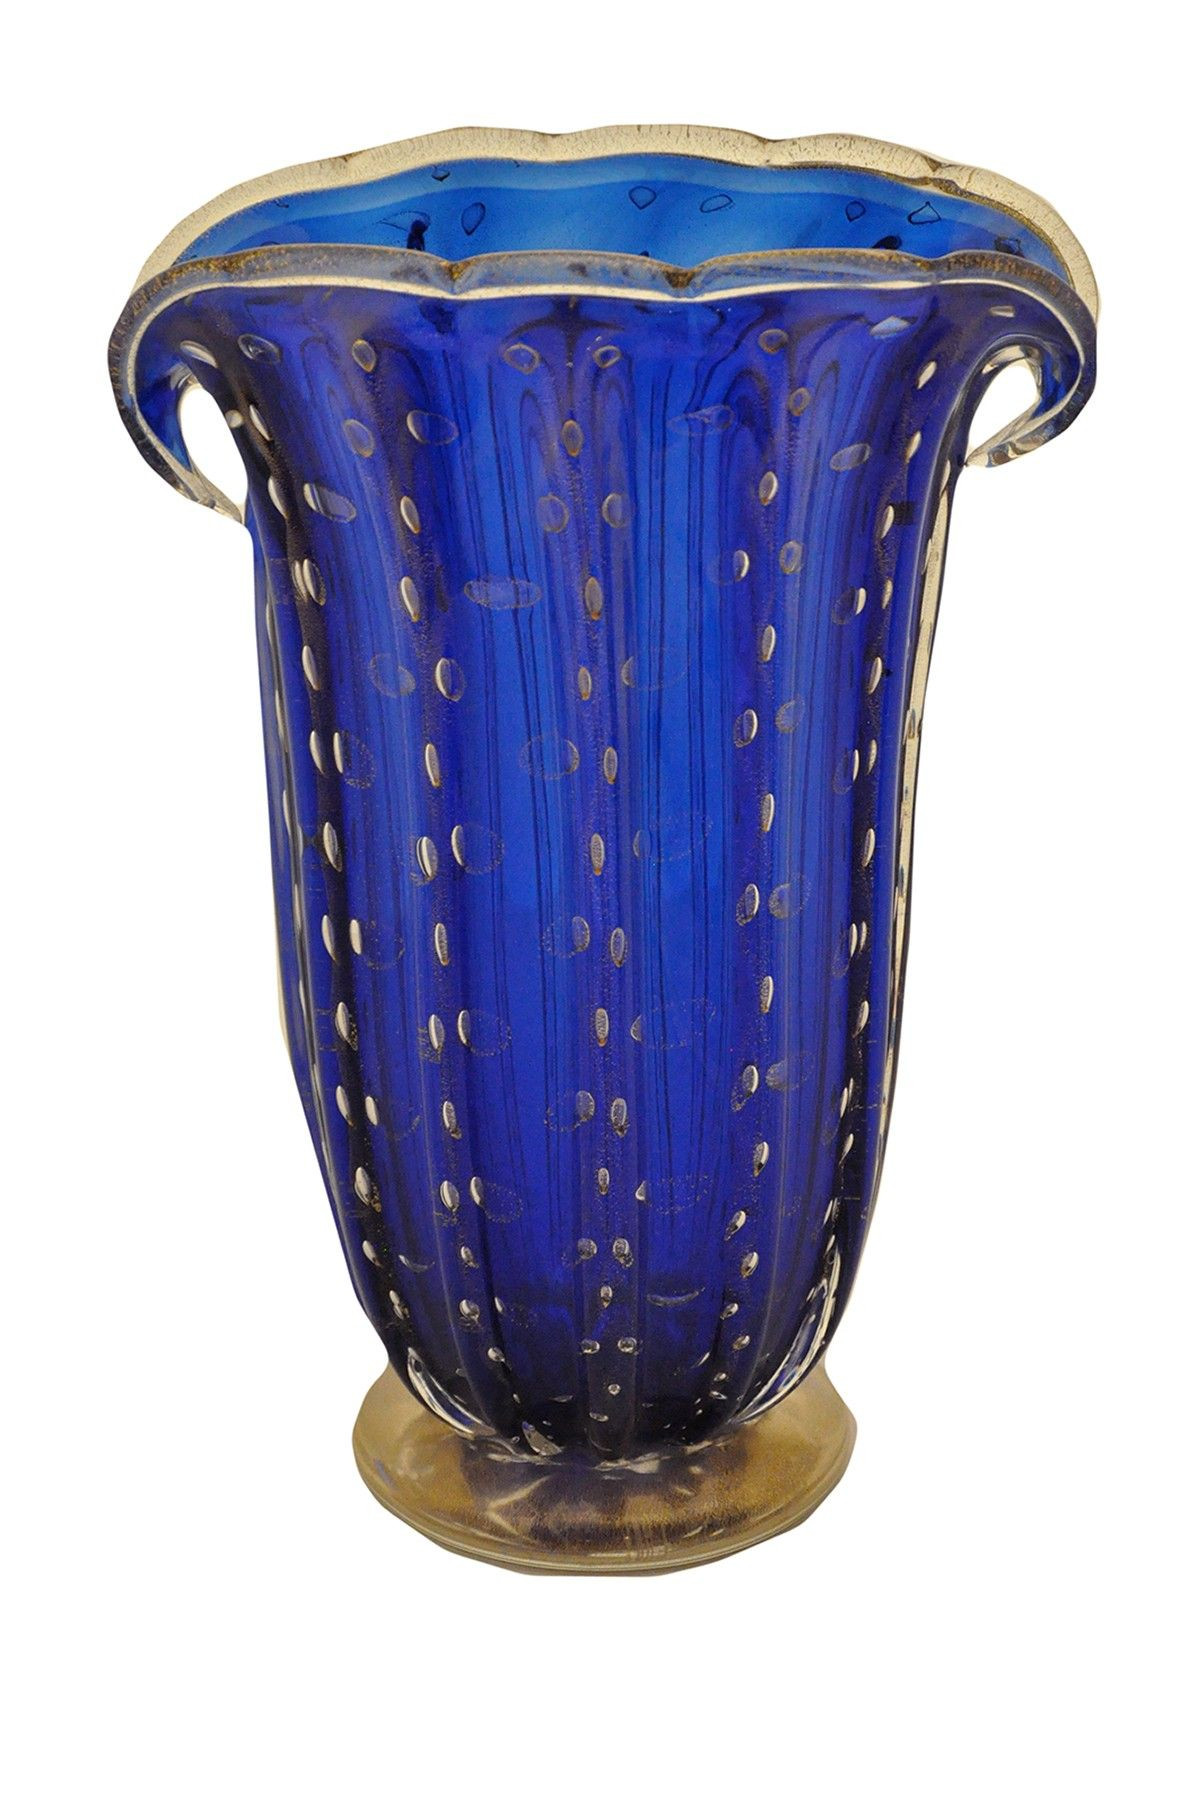 kosta boda blue mirage crystal vase of vintage blue murano glass vase with 24k gold italy glass for vintage blue murano glass vase with 24k gold italy